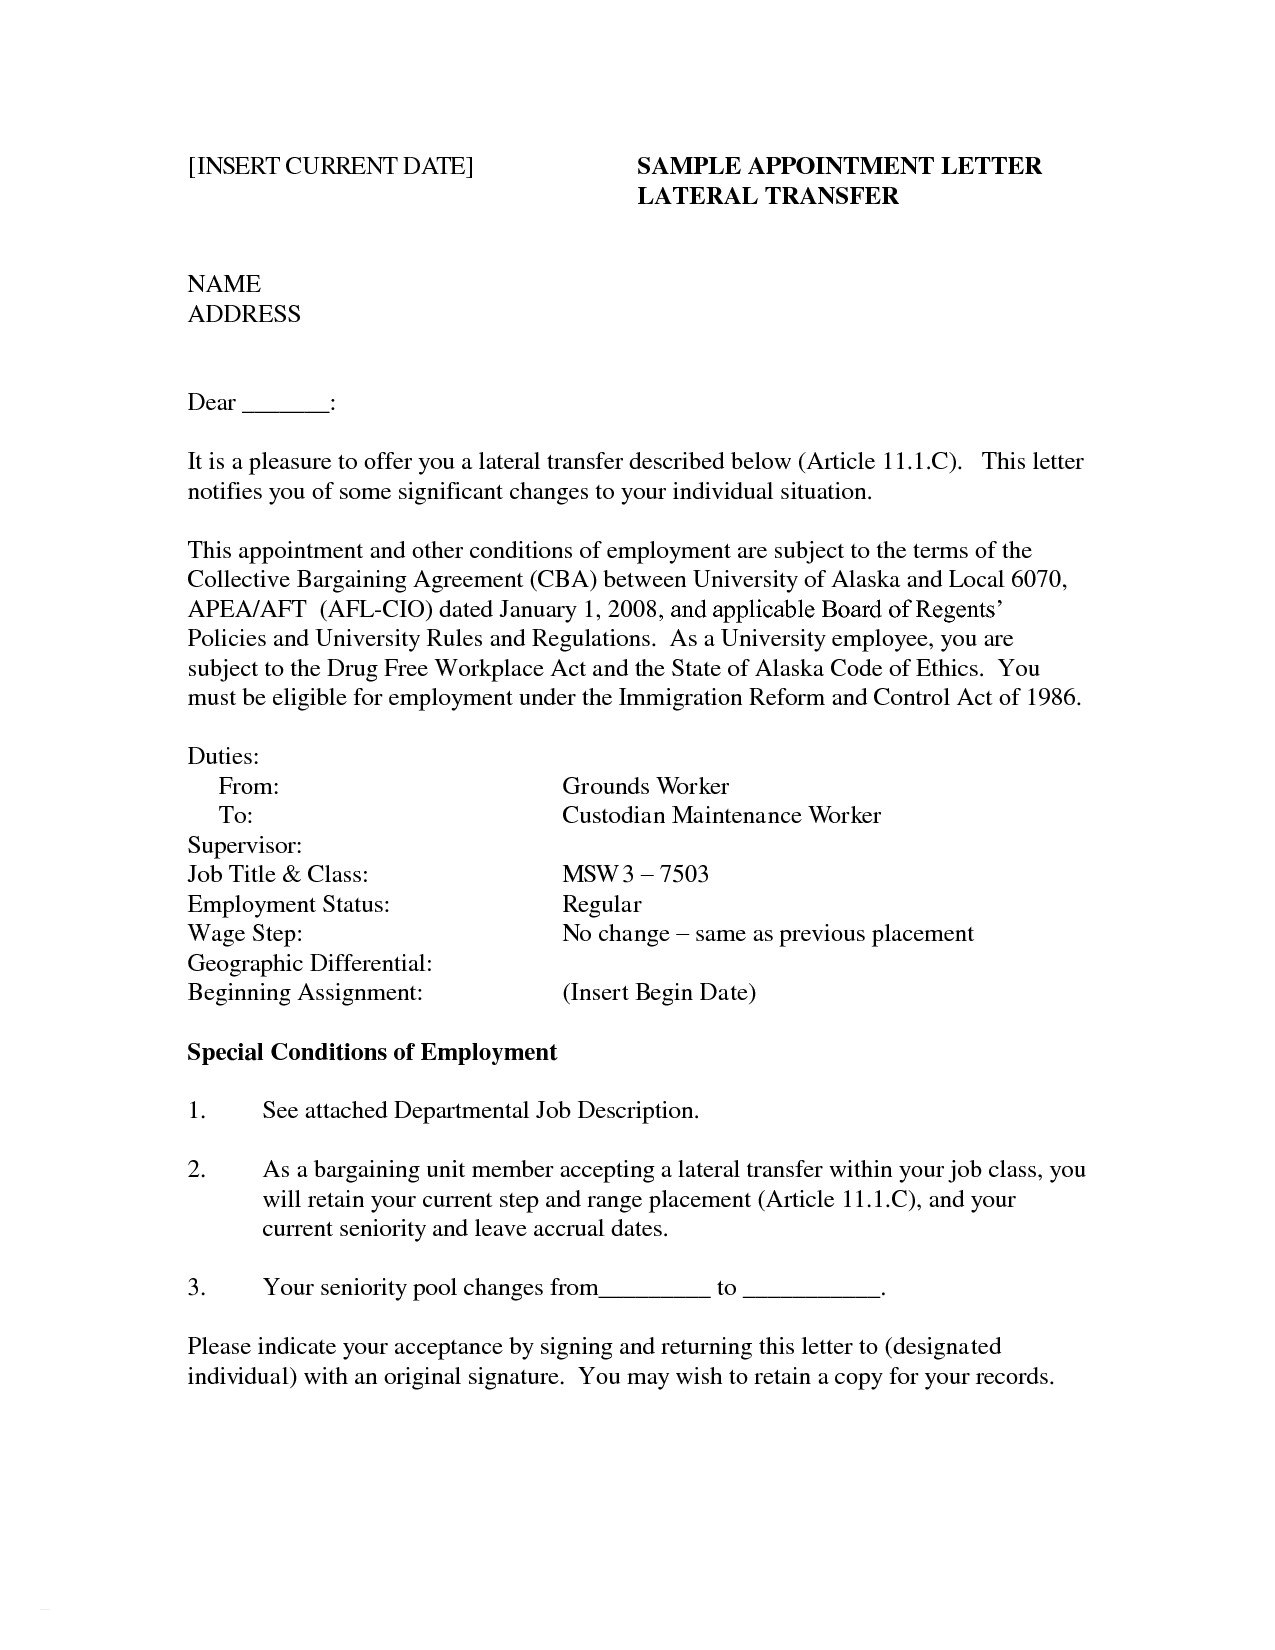 Microsoft Word Cover Letter Template - Resume and Cover Letter Templates Inspiration Cover Letter Template